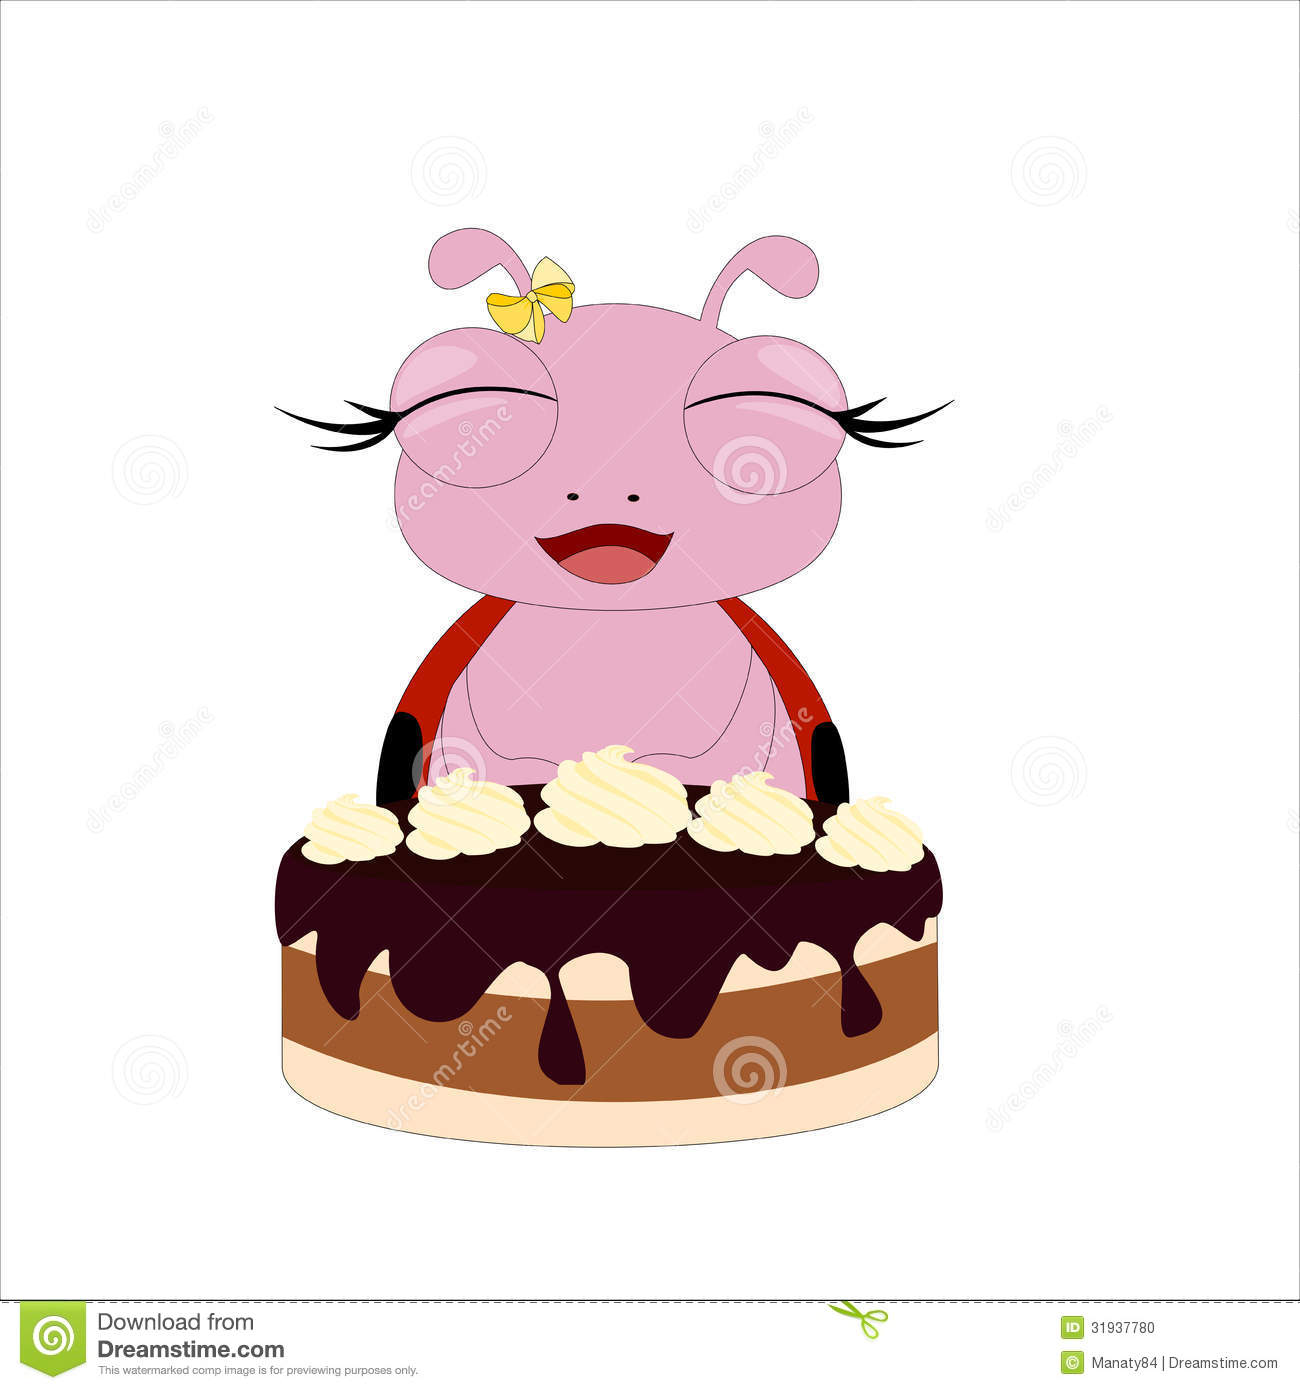 Chocolate Cake Cartoon Images : Cartoon Piece Of Chocolate Cake Pictures page 11 ...